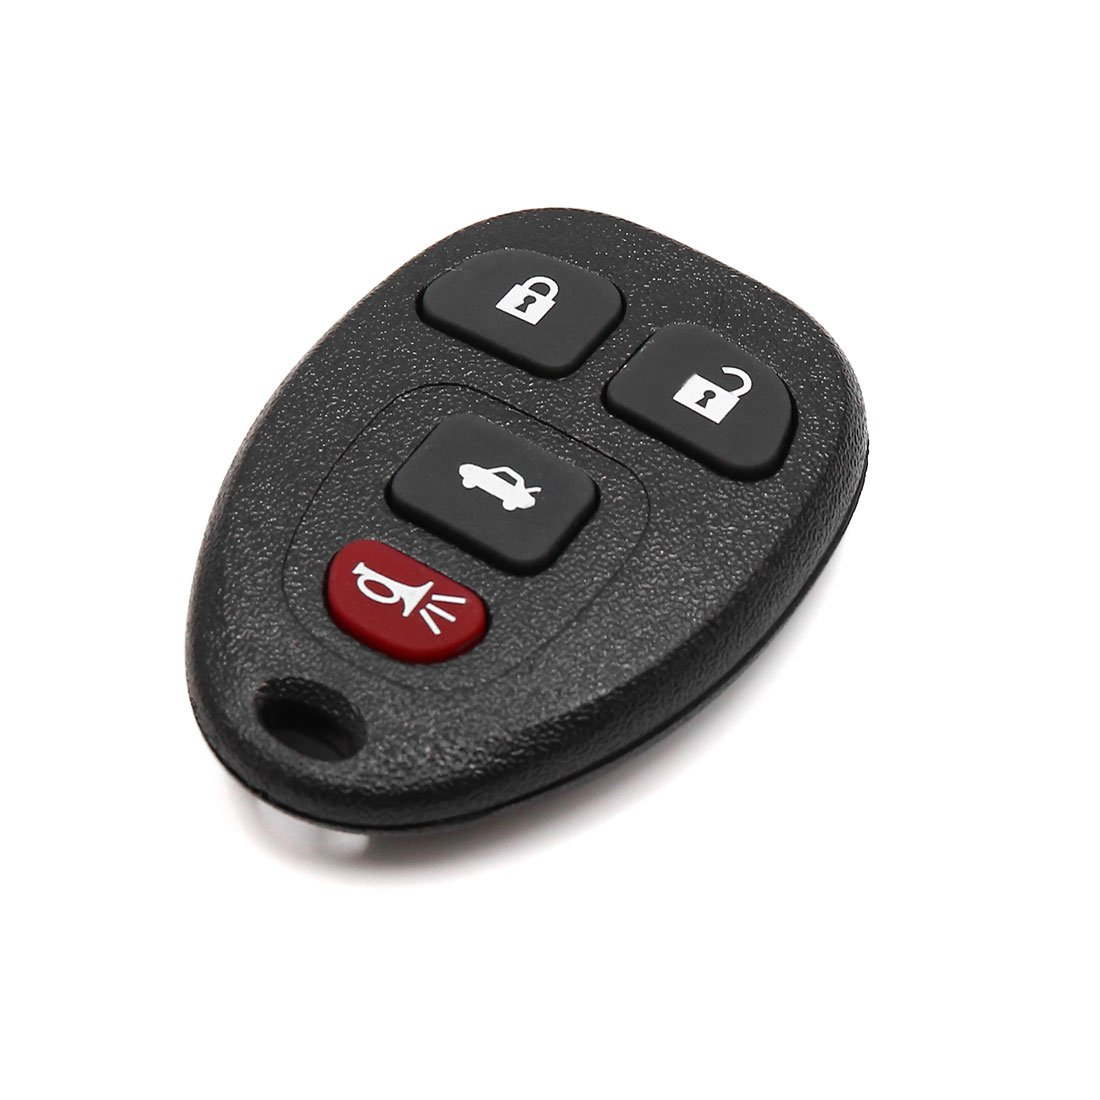 Uxcell a18060600ux0310 Car Keyless Entry Remote